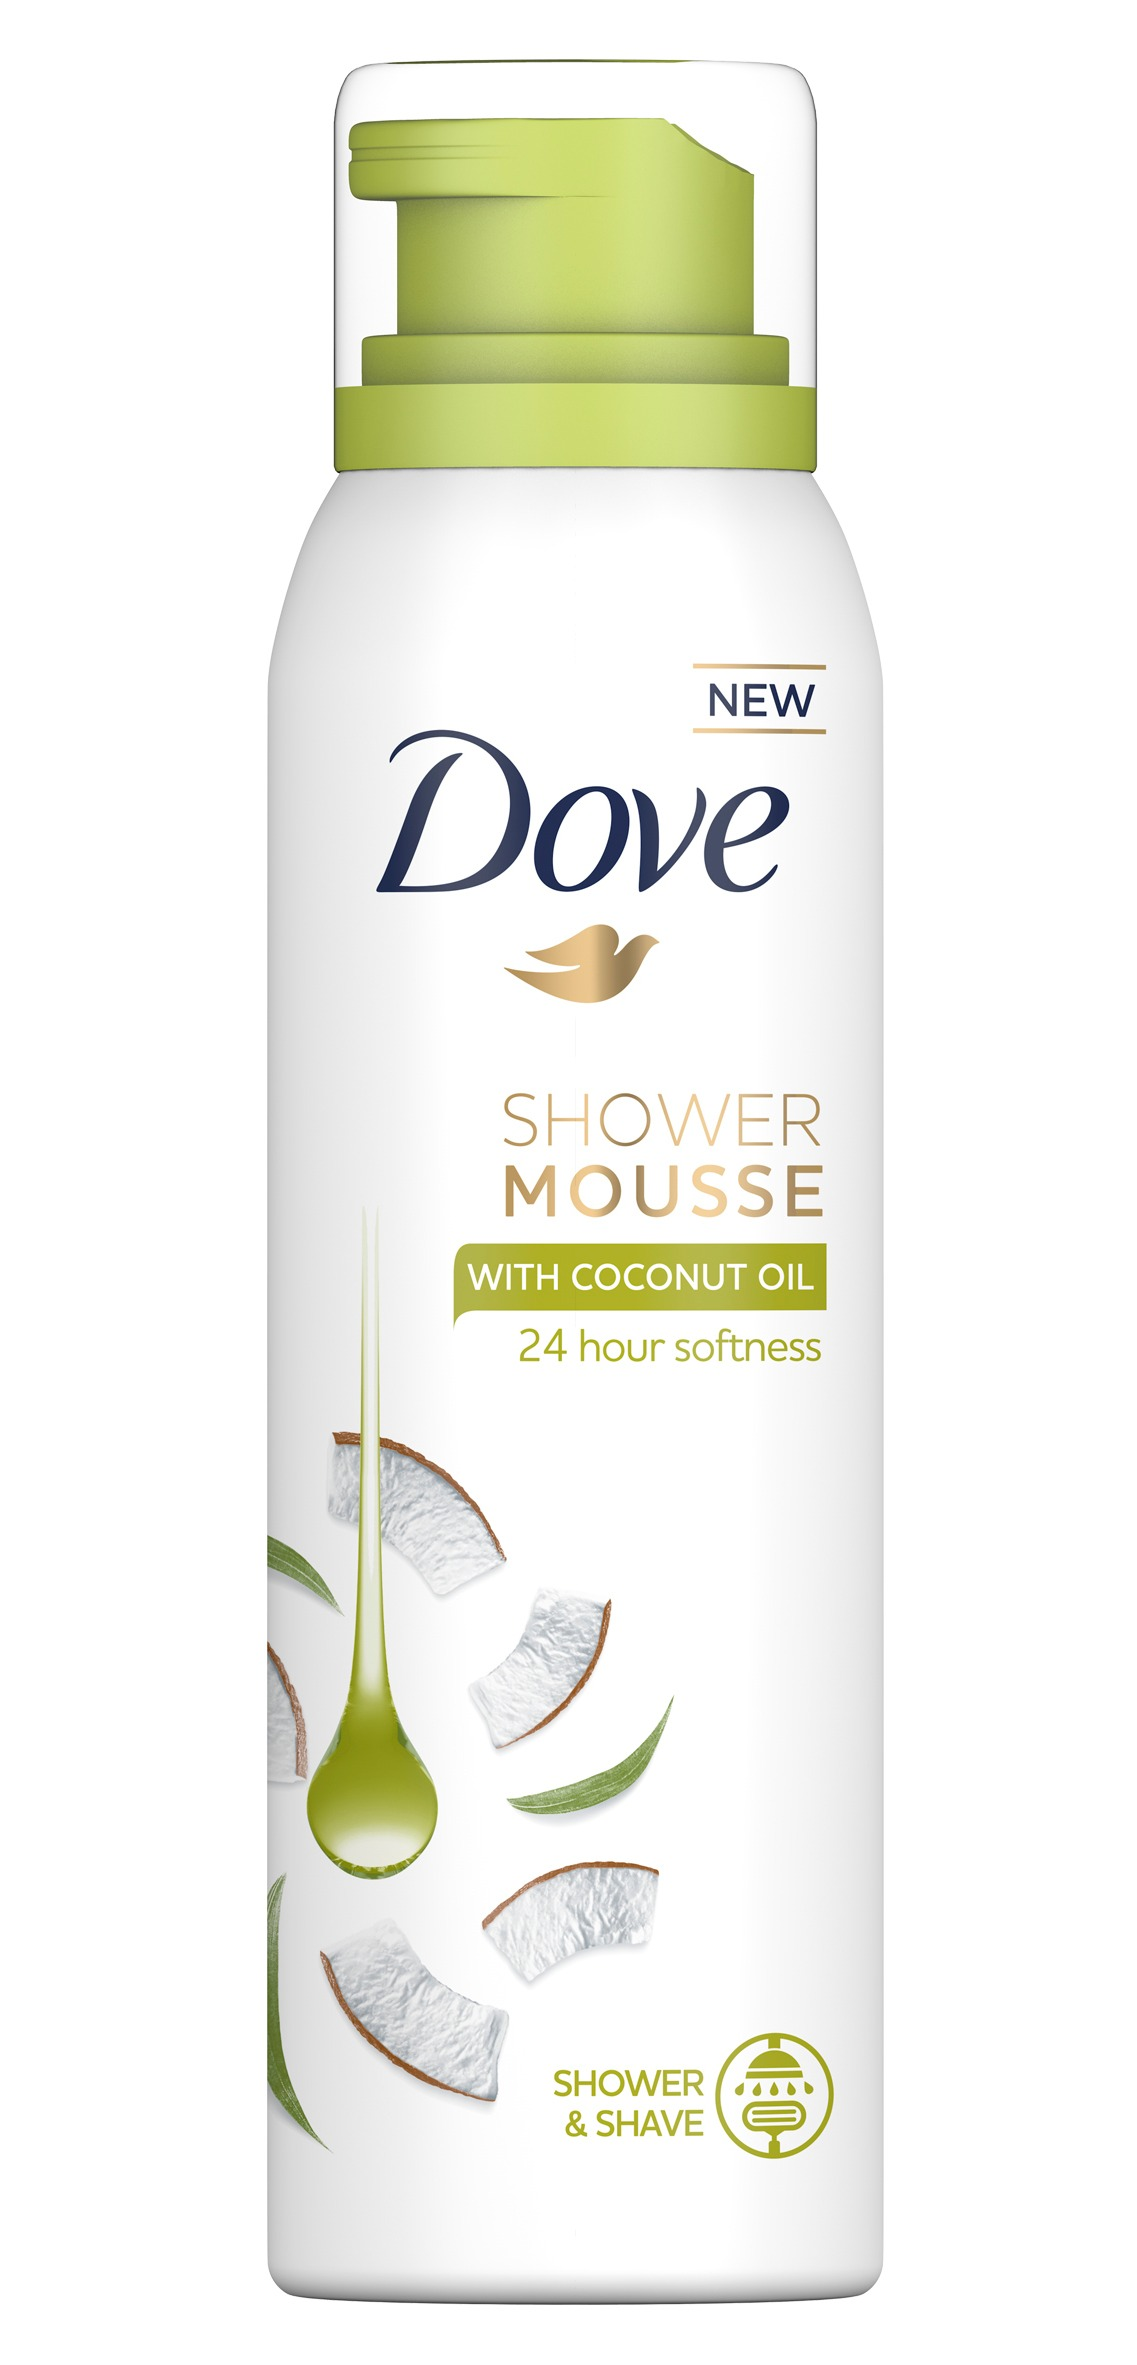 Superdrug has a buy one get one free on Dove Shower Mousse